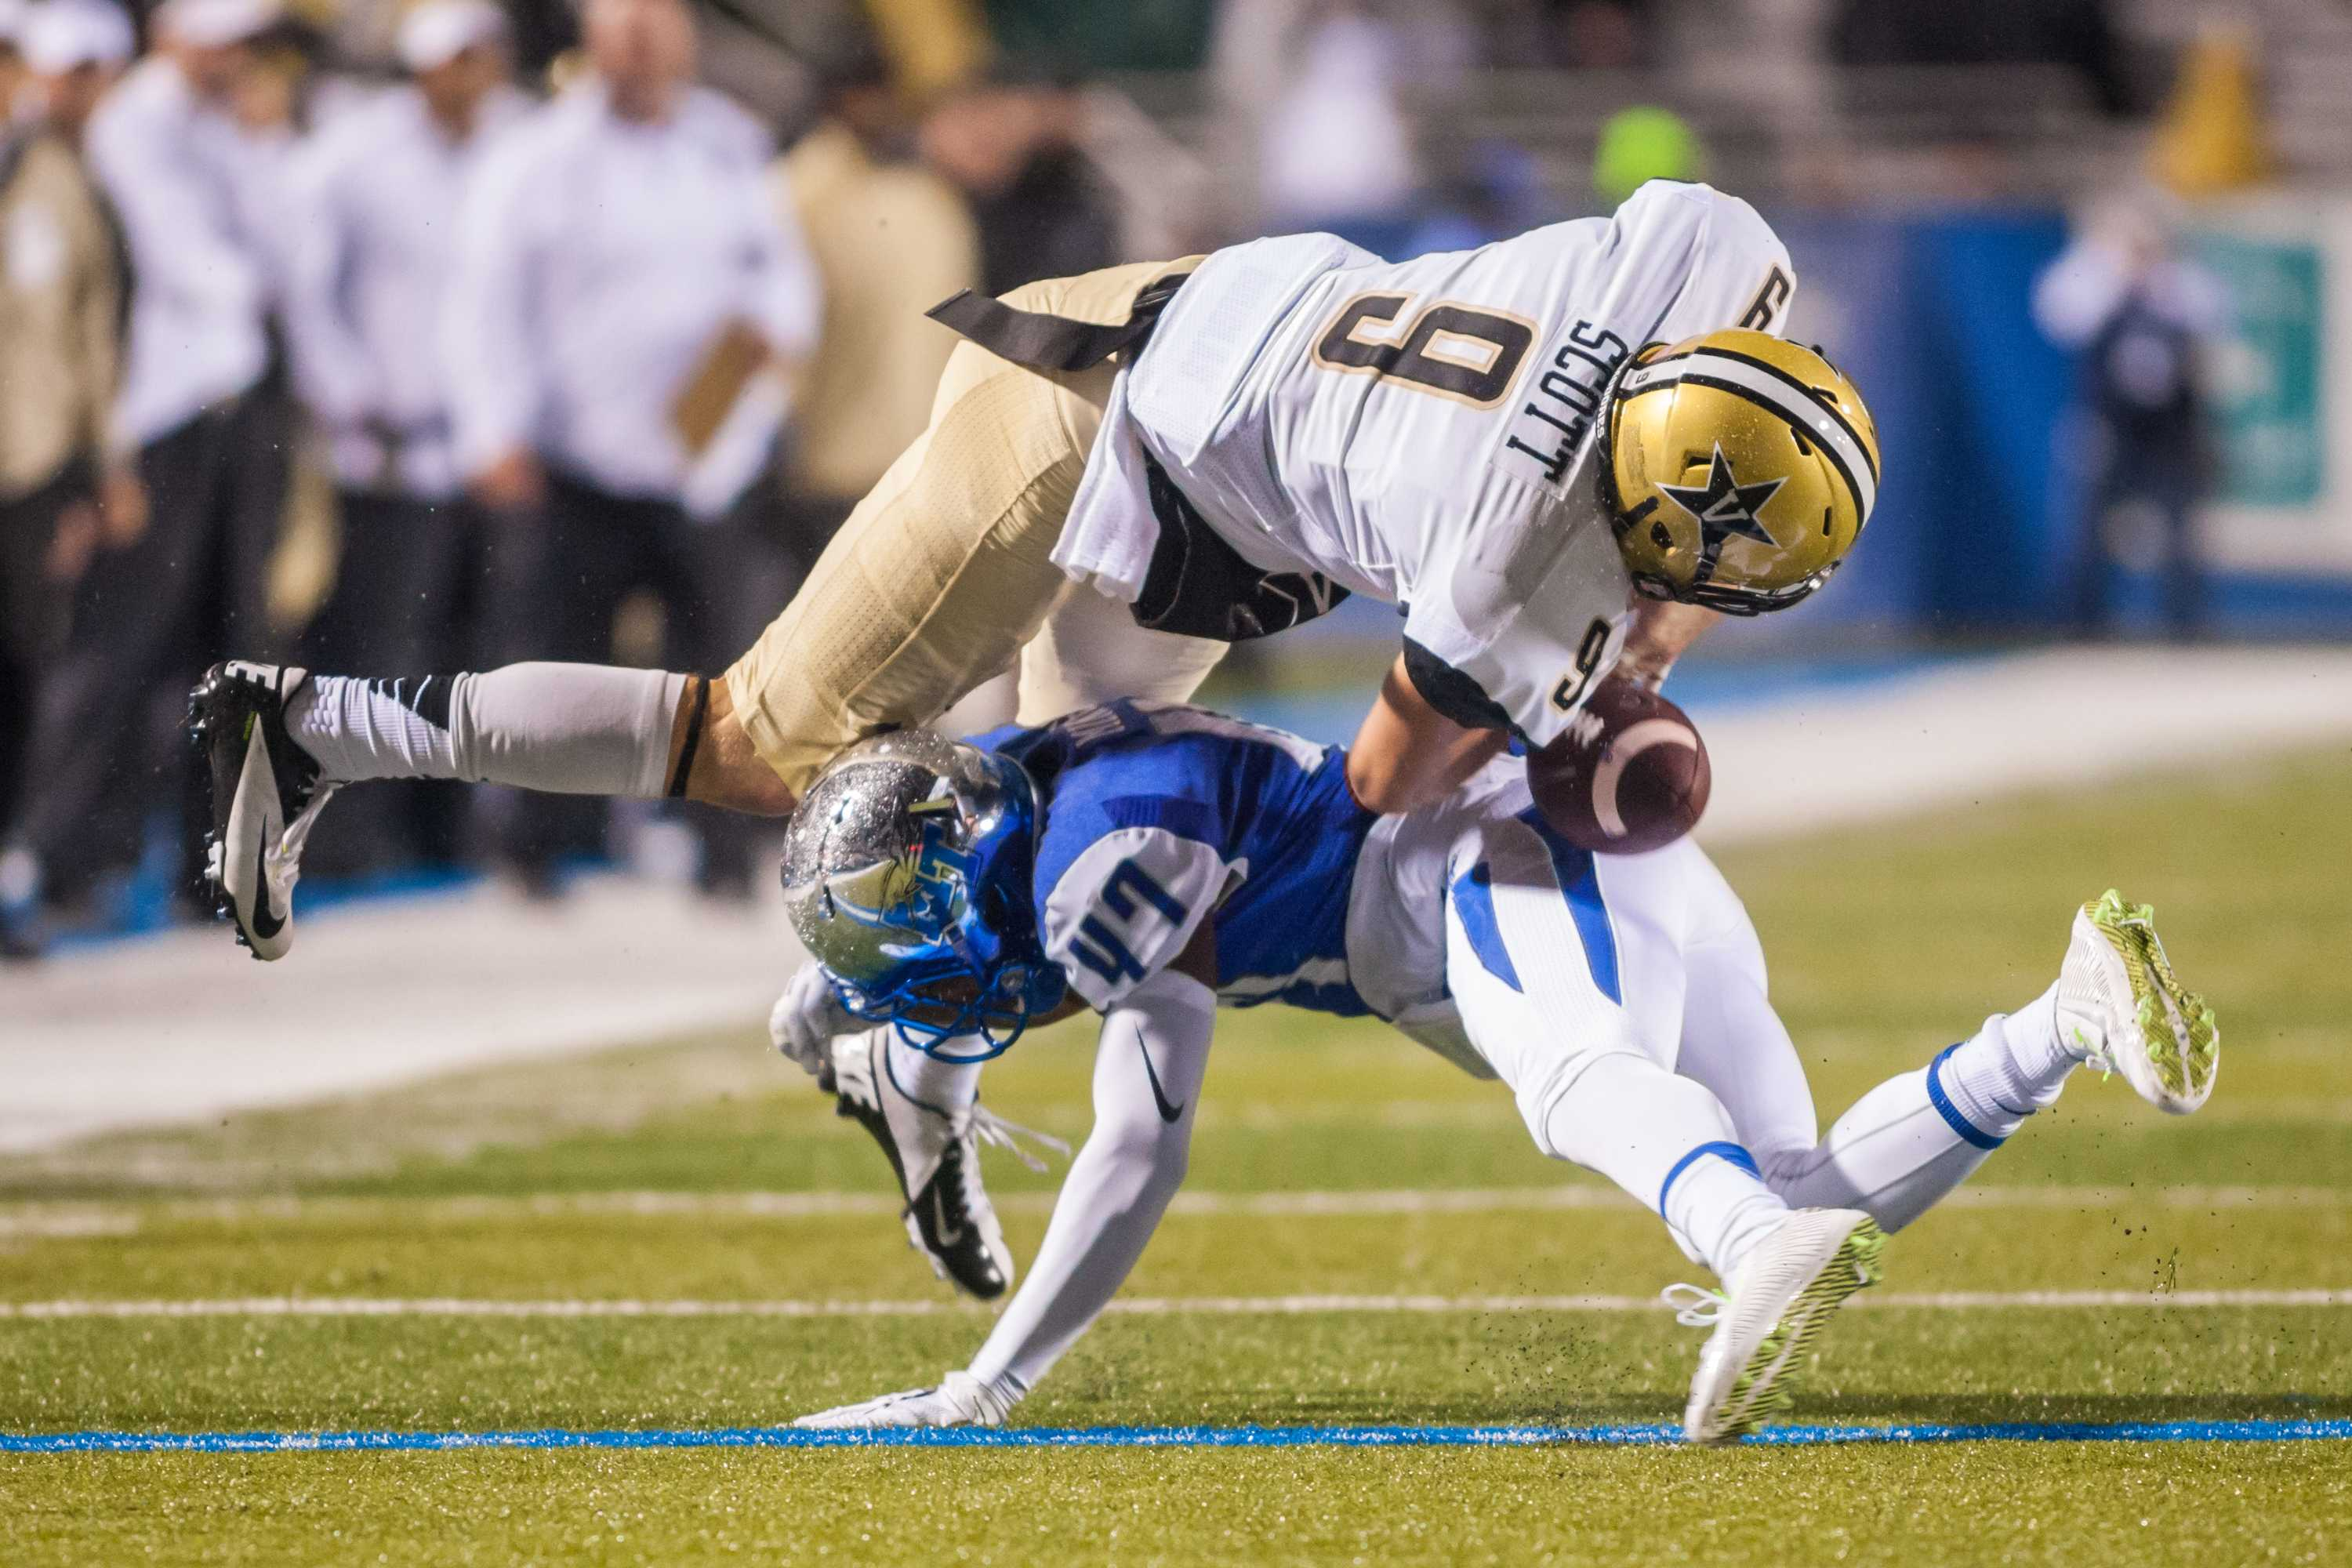 Caleb Scott (9) fumbles during Vanderbilt's 17-13 win against Middle Tennessee State University October 3, 2015. Photo by Ziyi Liu.